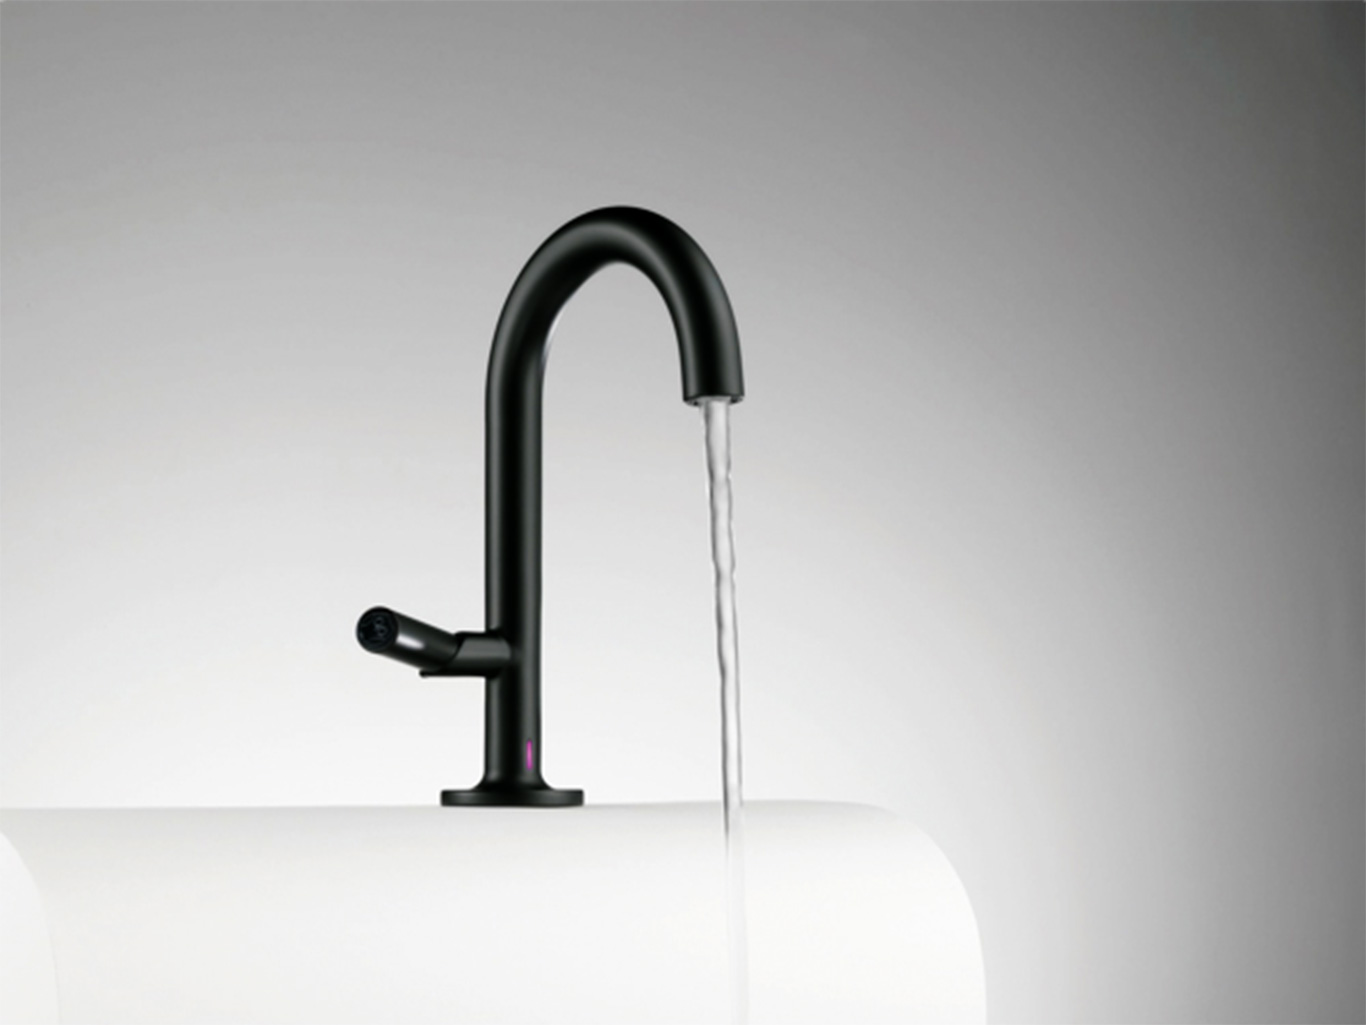 Outstanding Calise Faucet Ideas - Waterfall Faucet ...